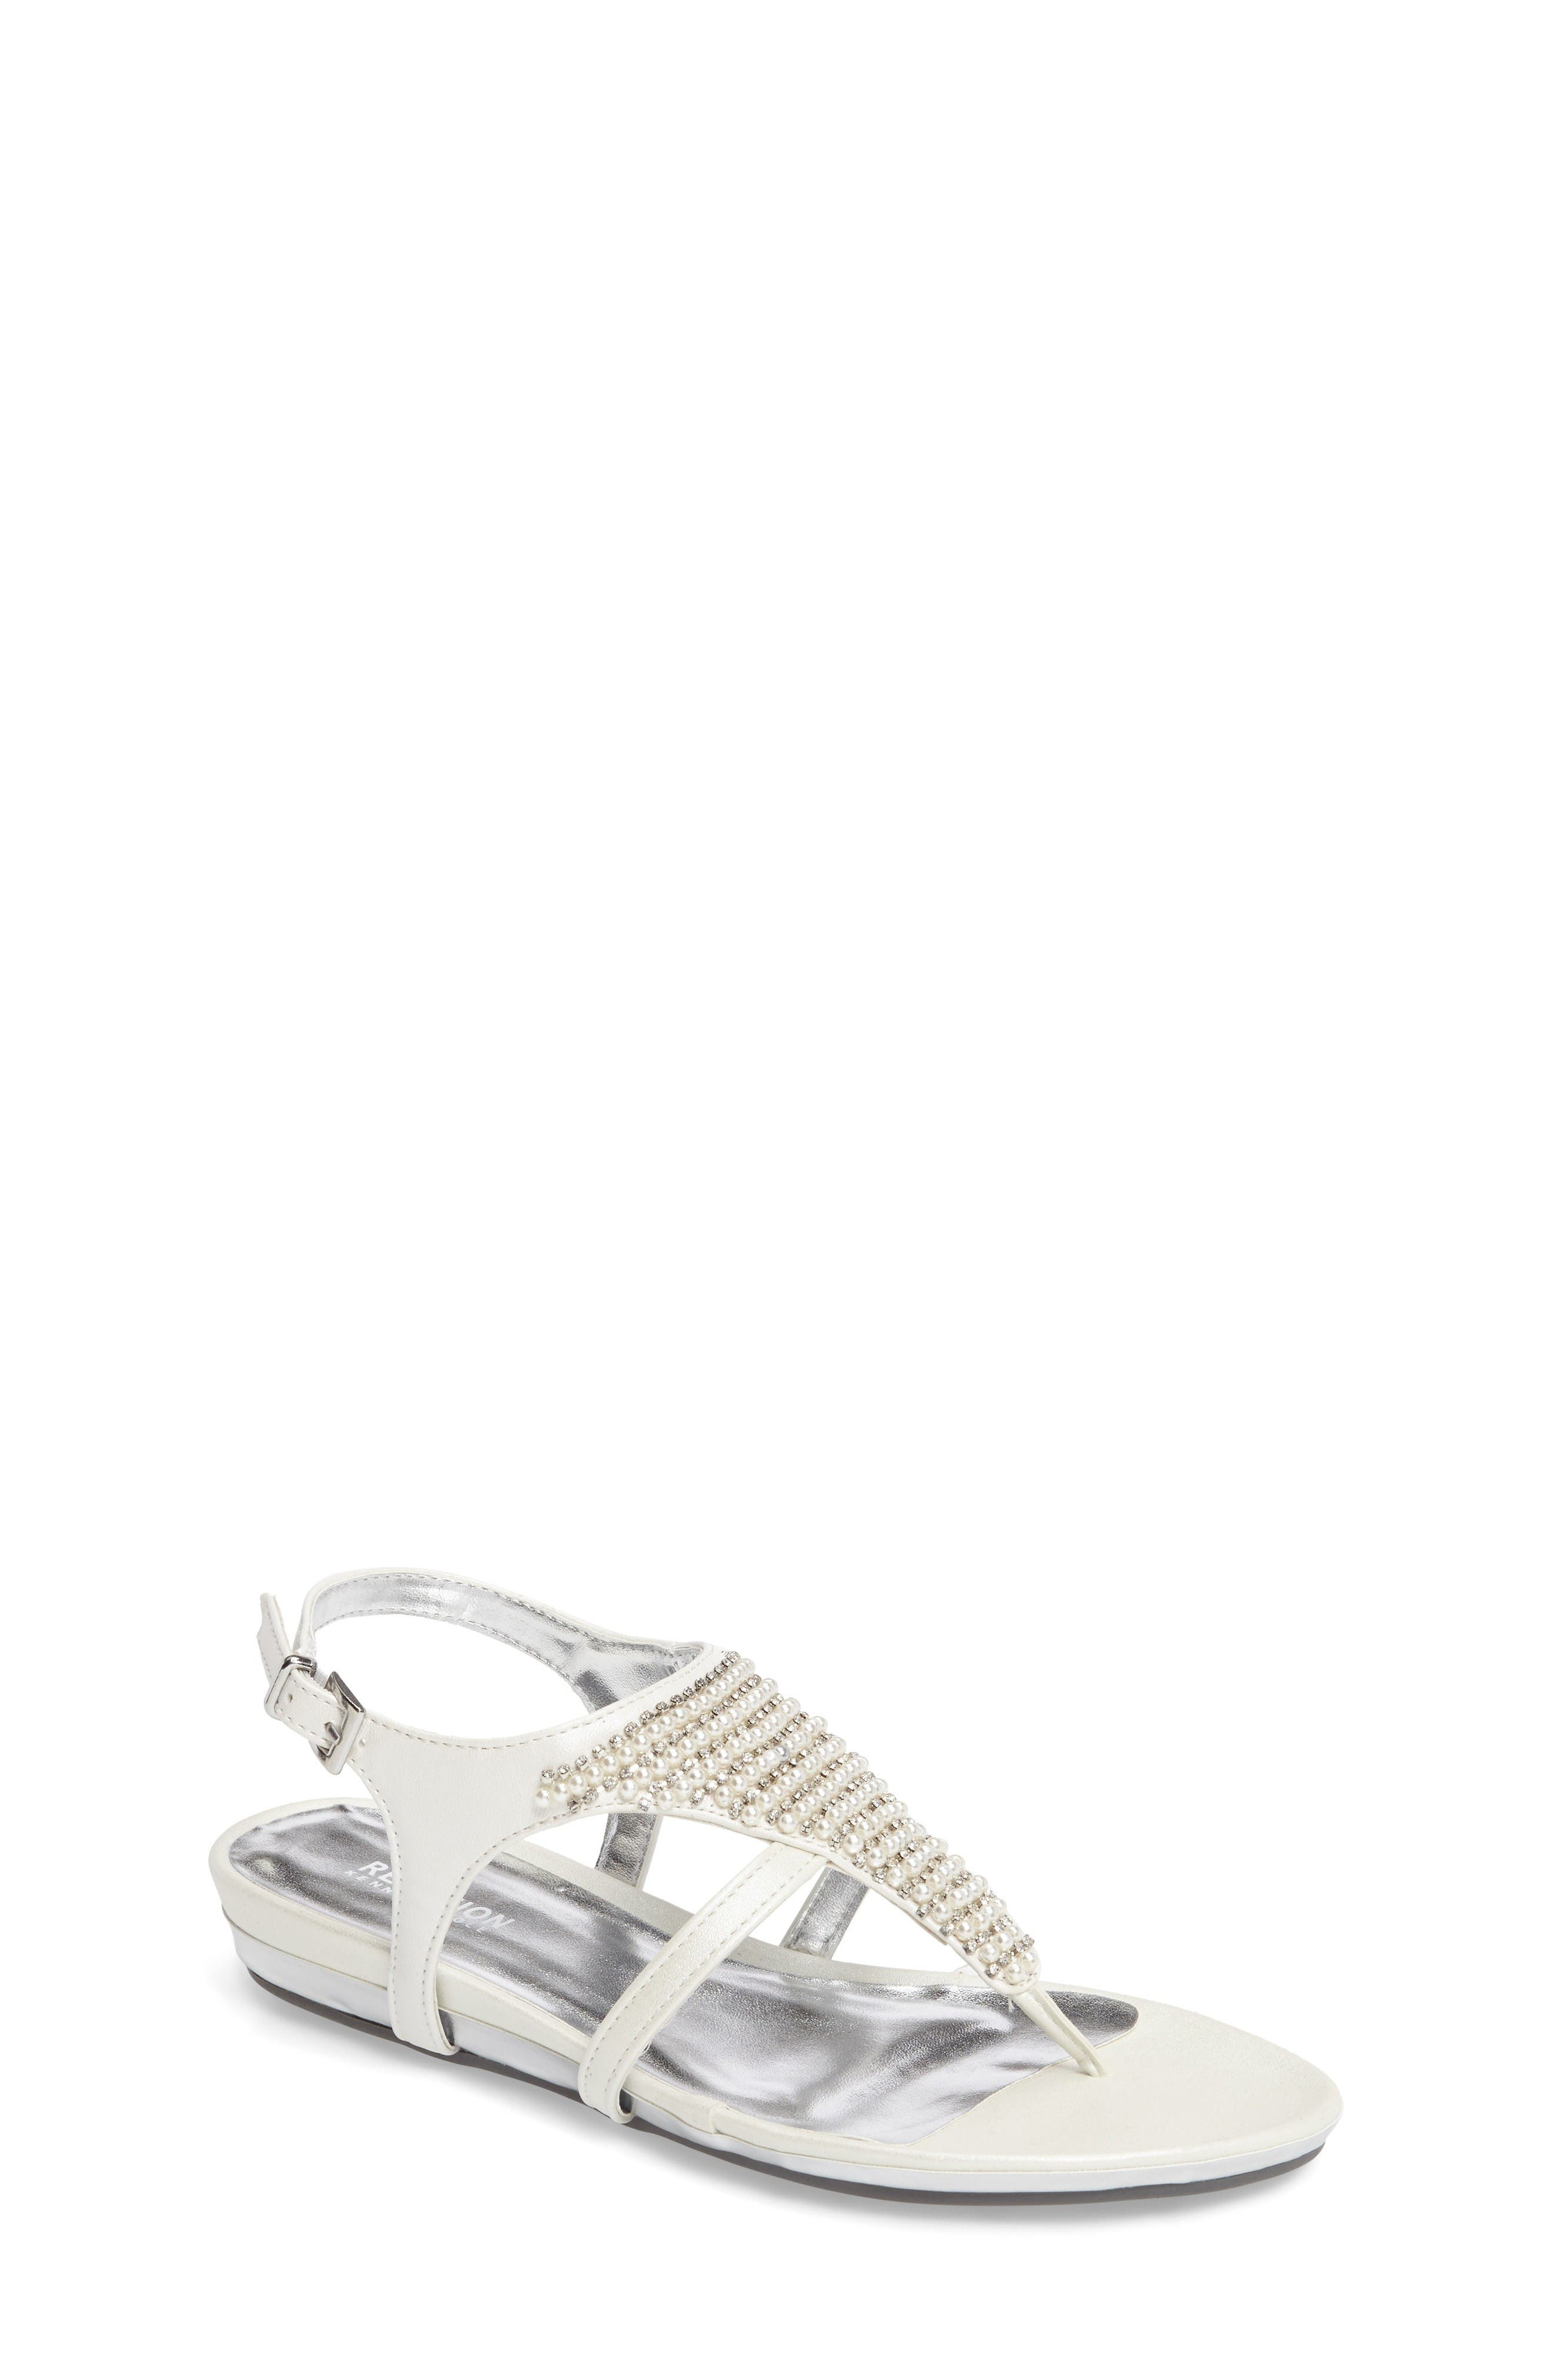 Kenneth Cole New York Lost Way Embellished Sandal (Toddler, Little Kid & Big Kid)